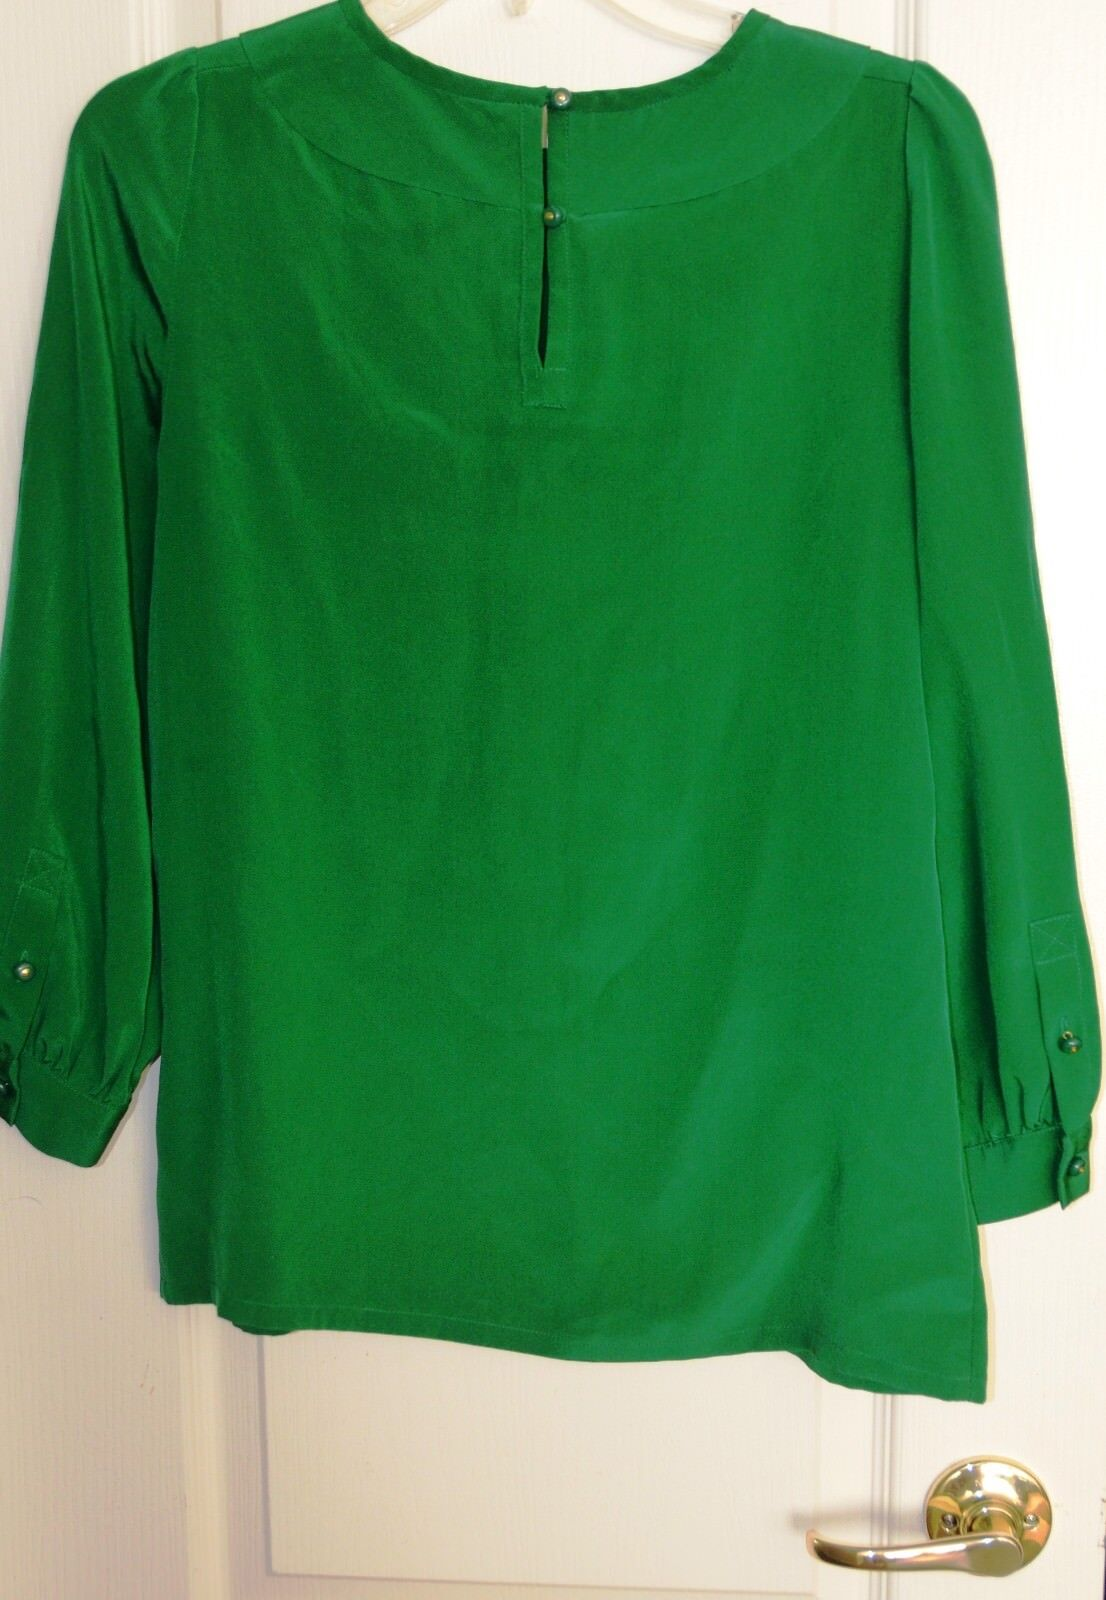 Adorable top by Mark Jacobs -  check it out